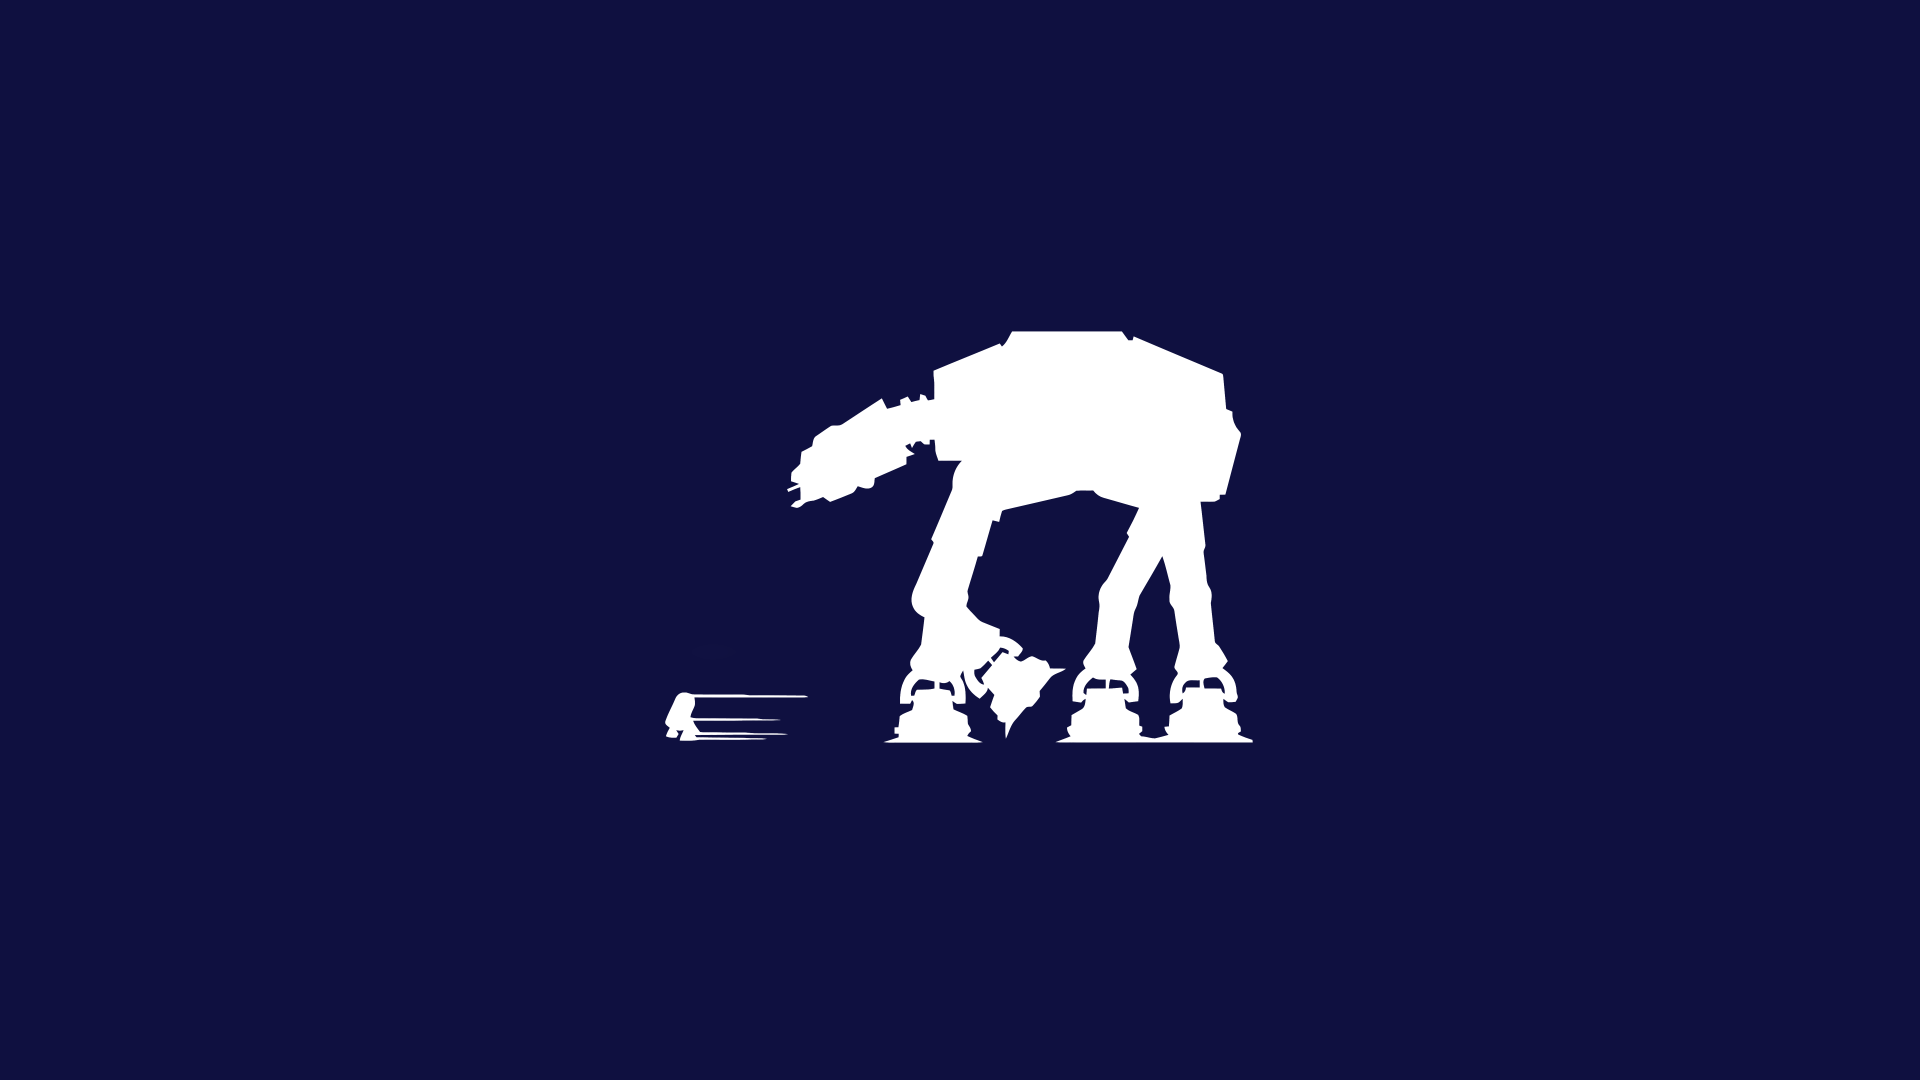 Wallpapers Star Wars - Wallpaper Cave